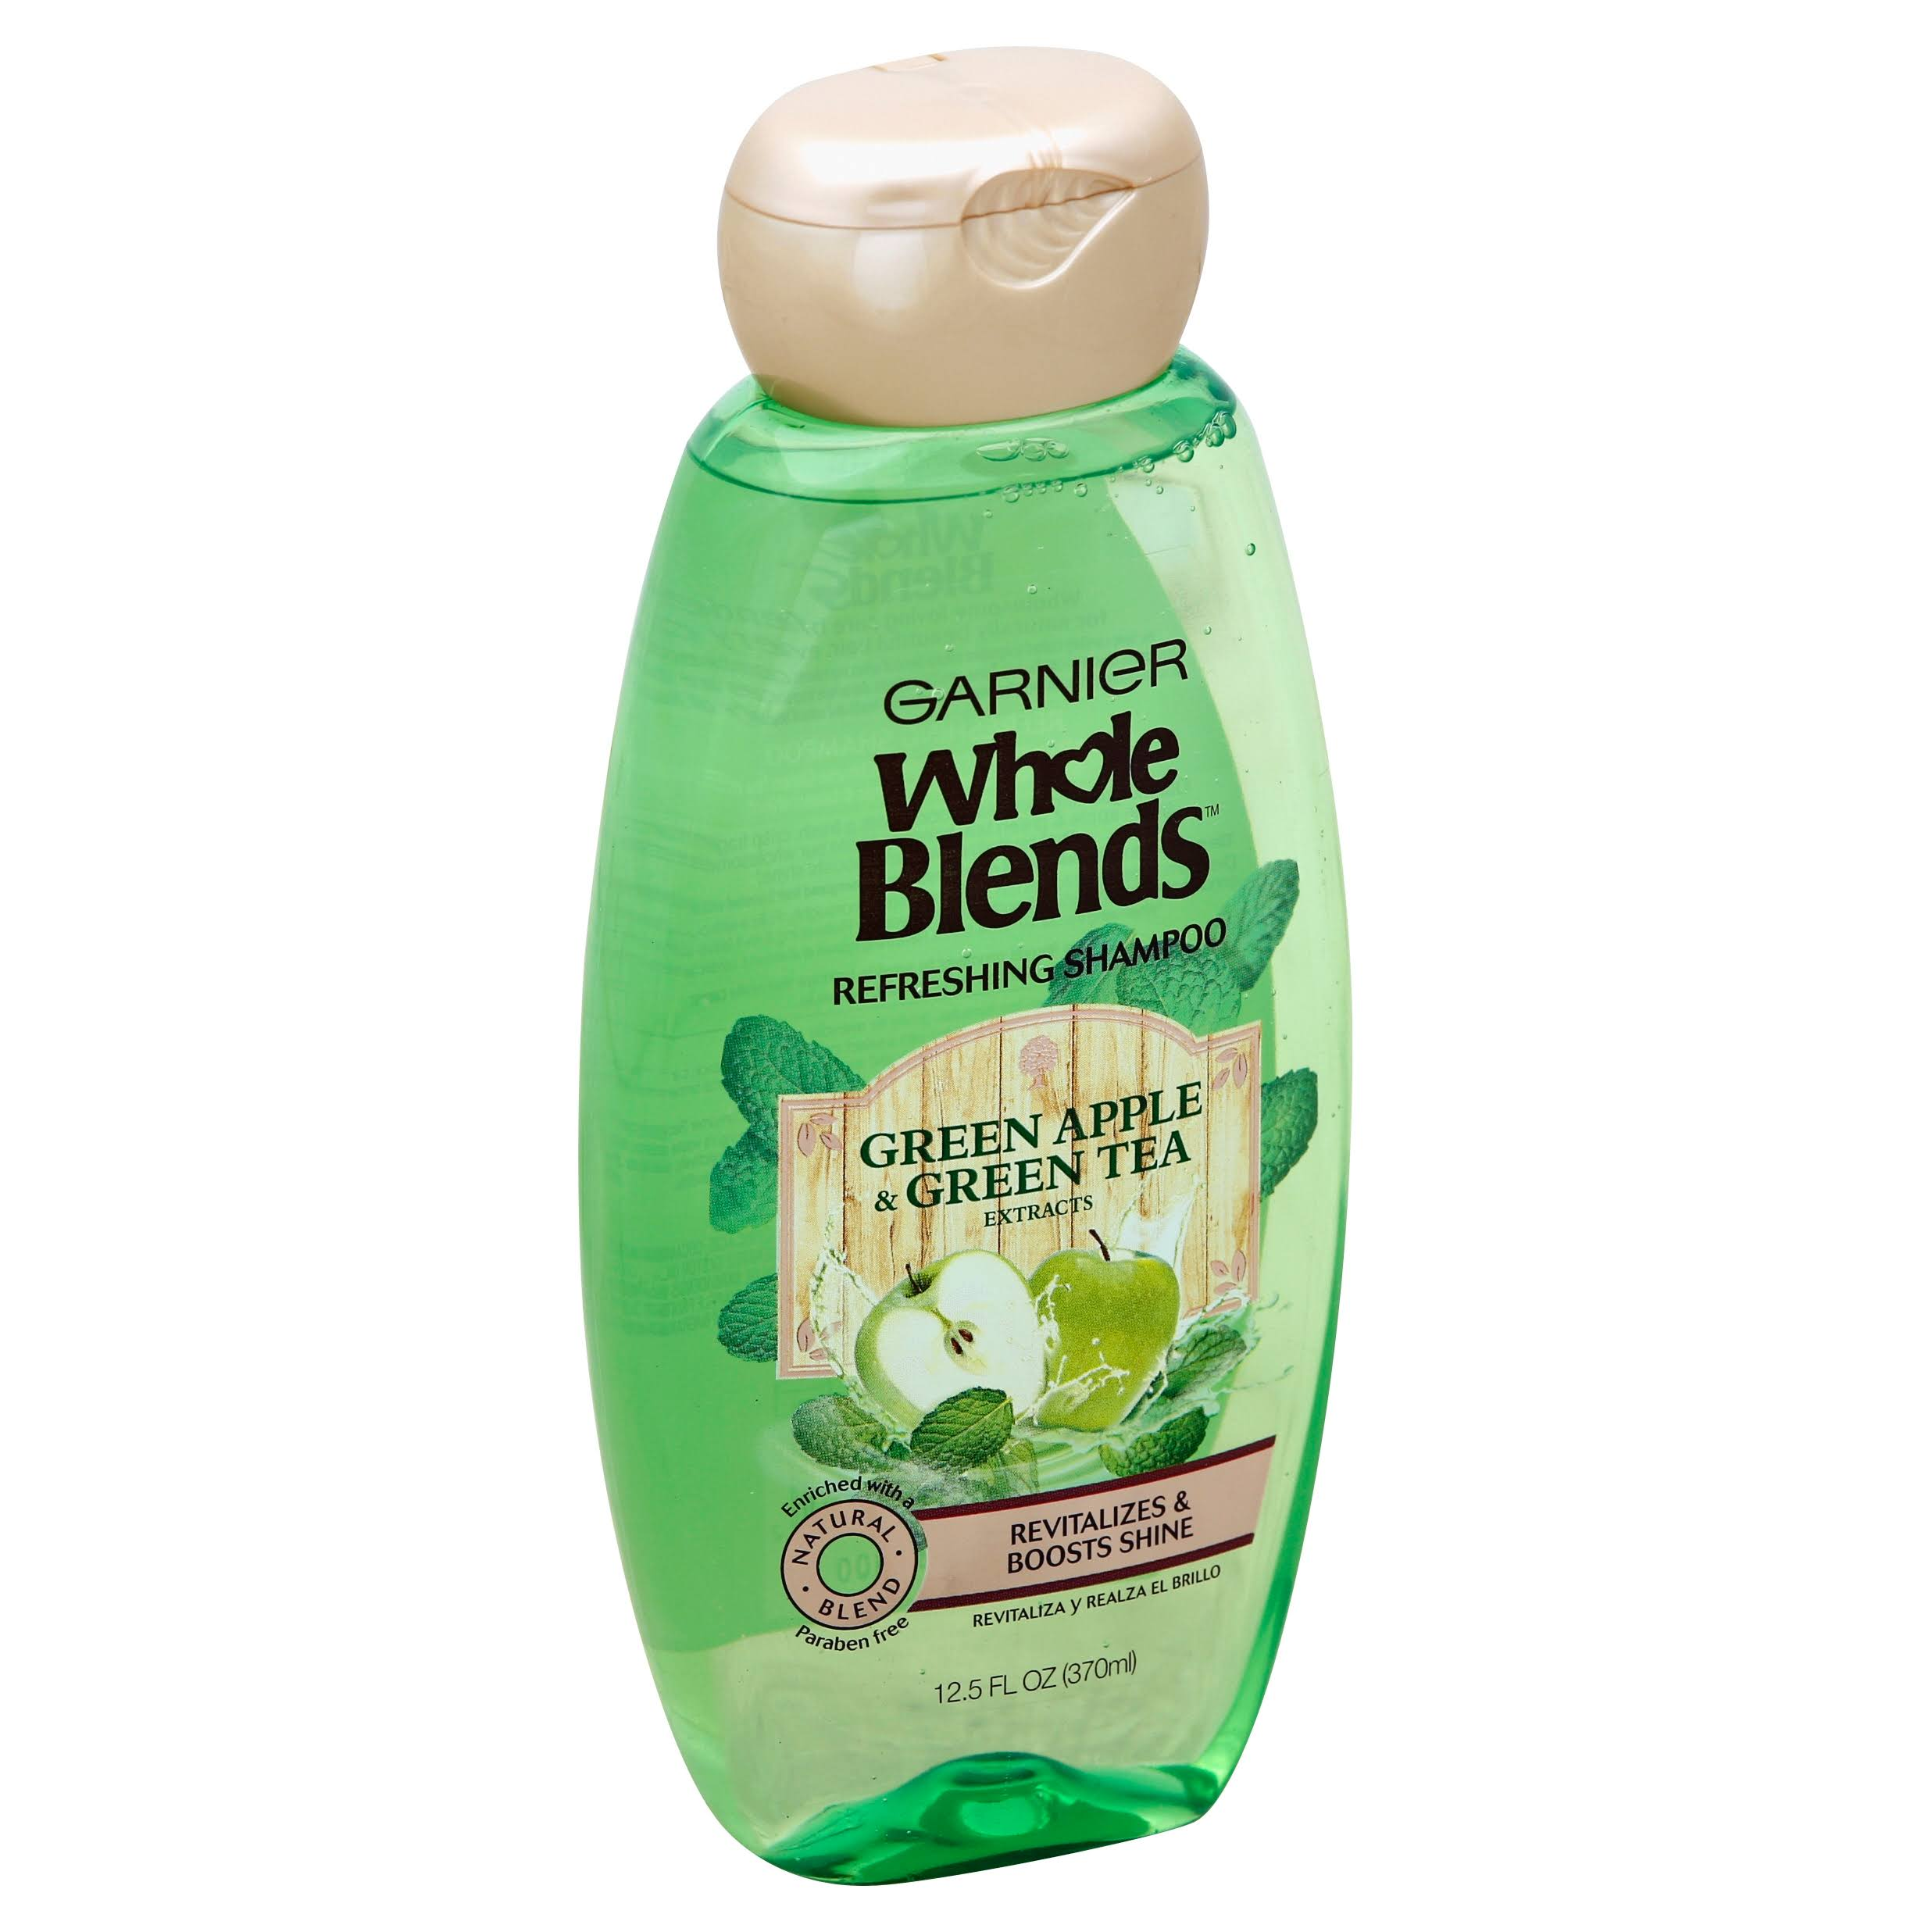 Garnier Whole Blends Shampoo - Green Apple & Green Tea, 370ml